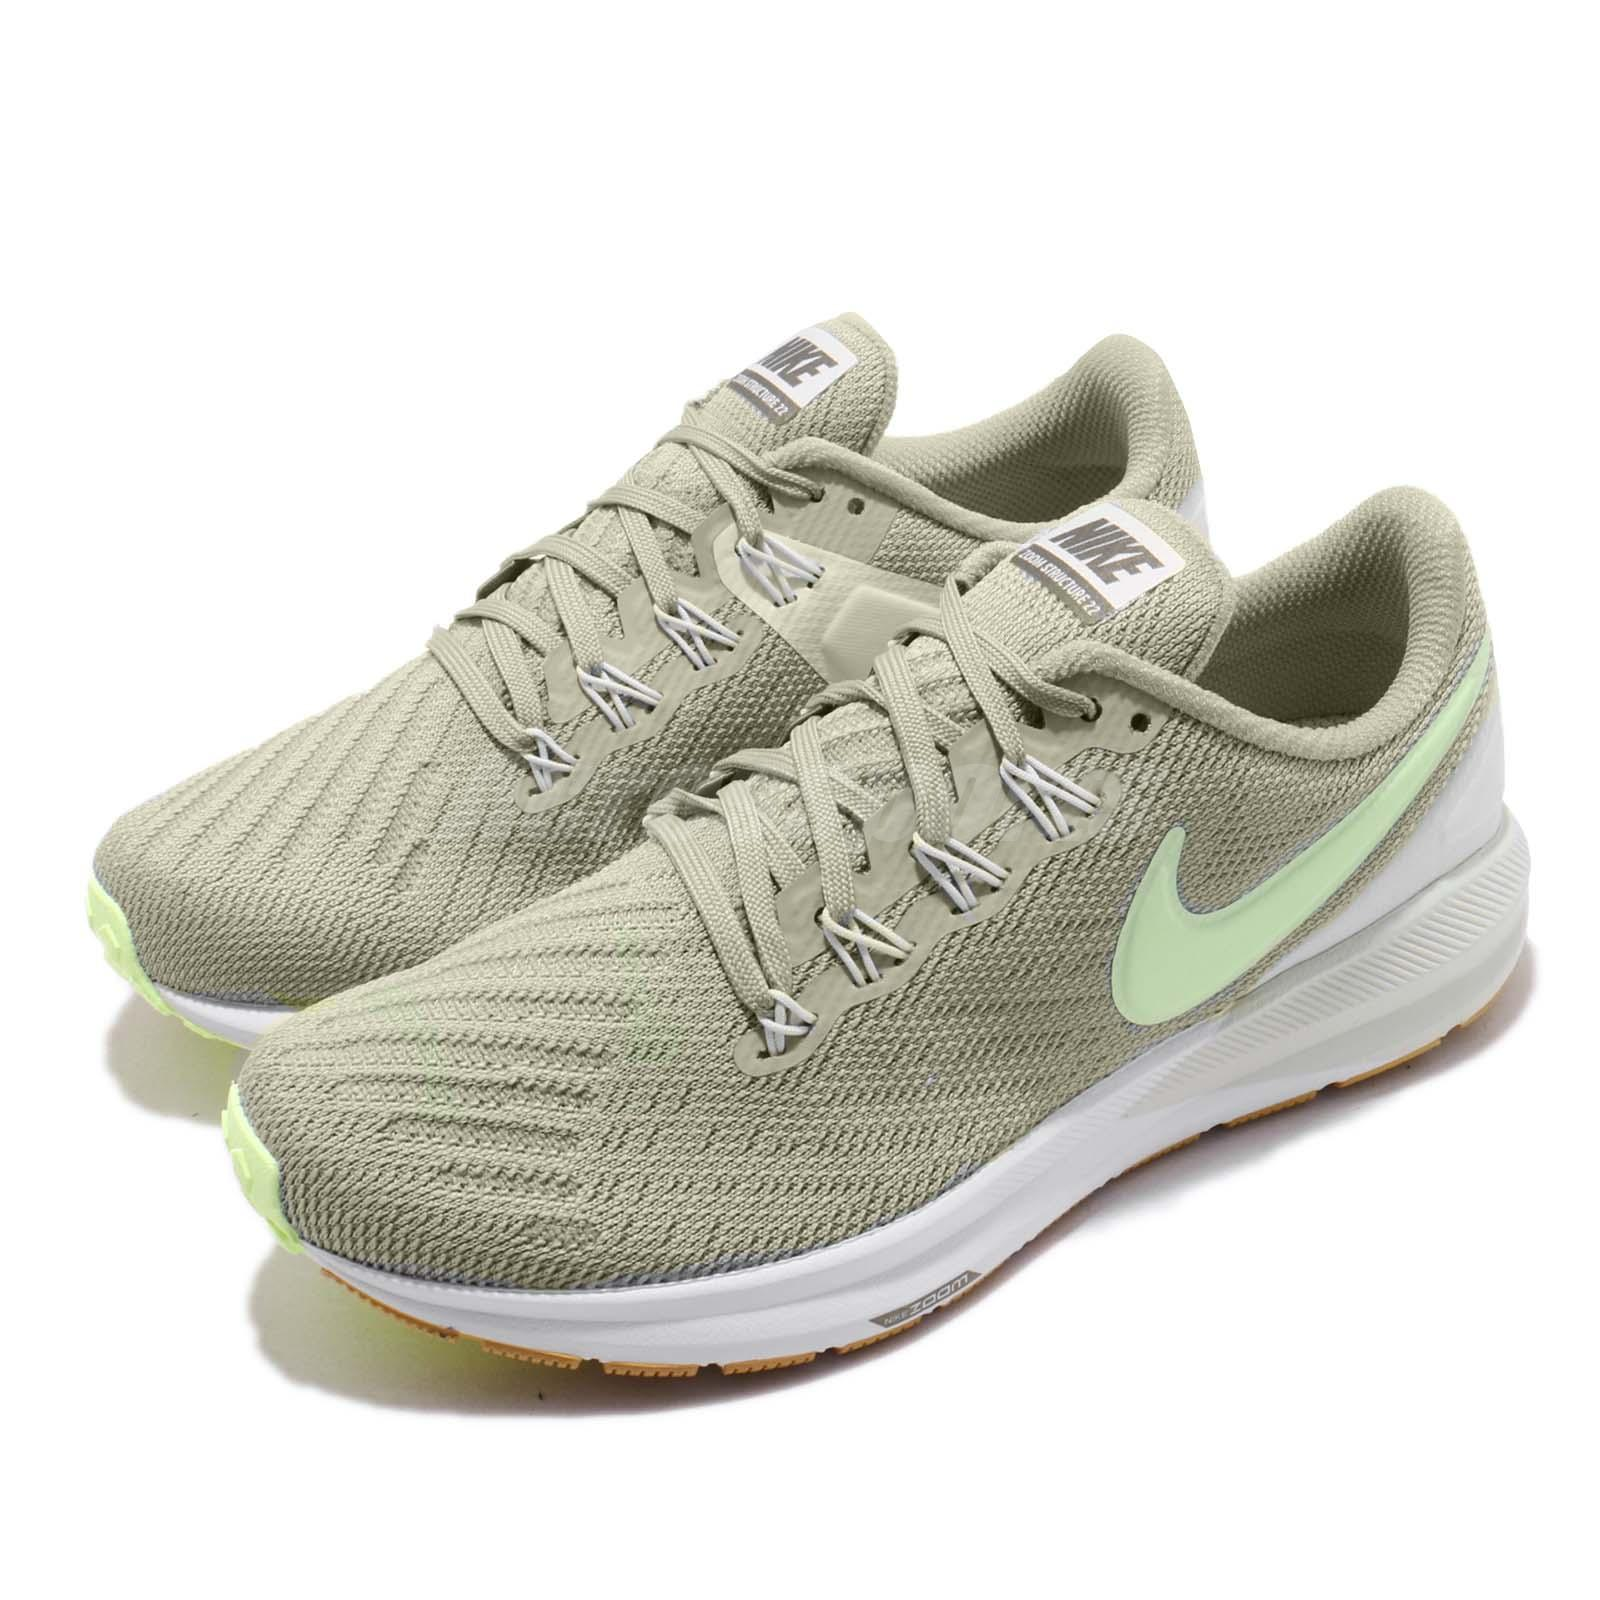 price reduced excellent quality discount Nike Wmns Air Zoom Structure 22 Green White Womens Running Shoes ...